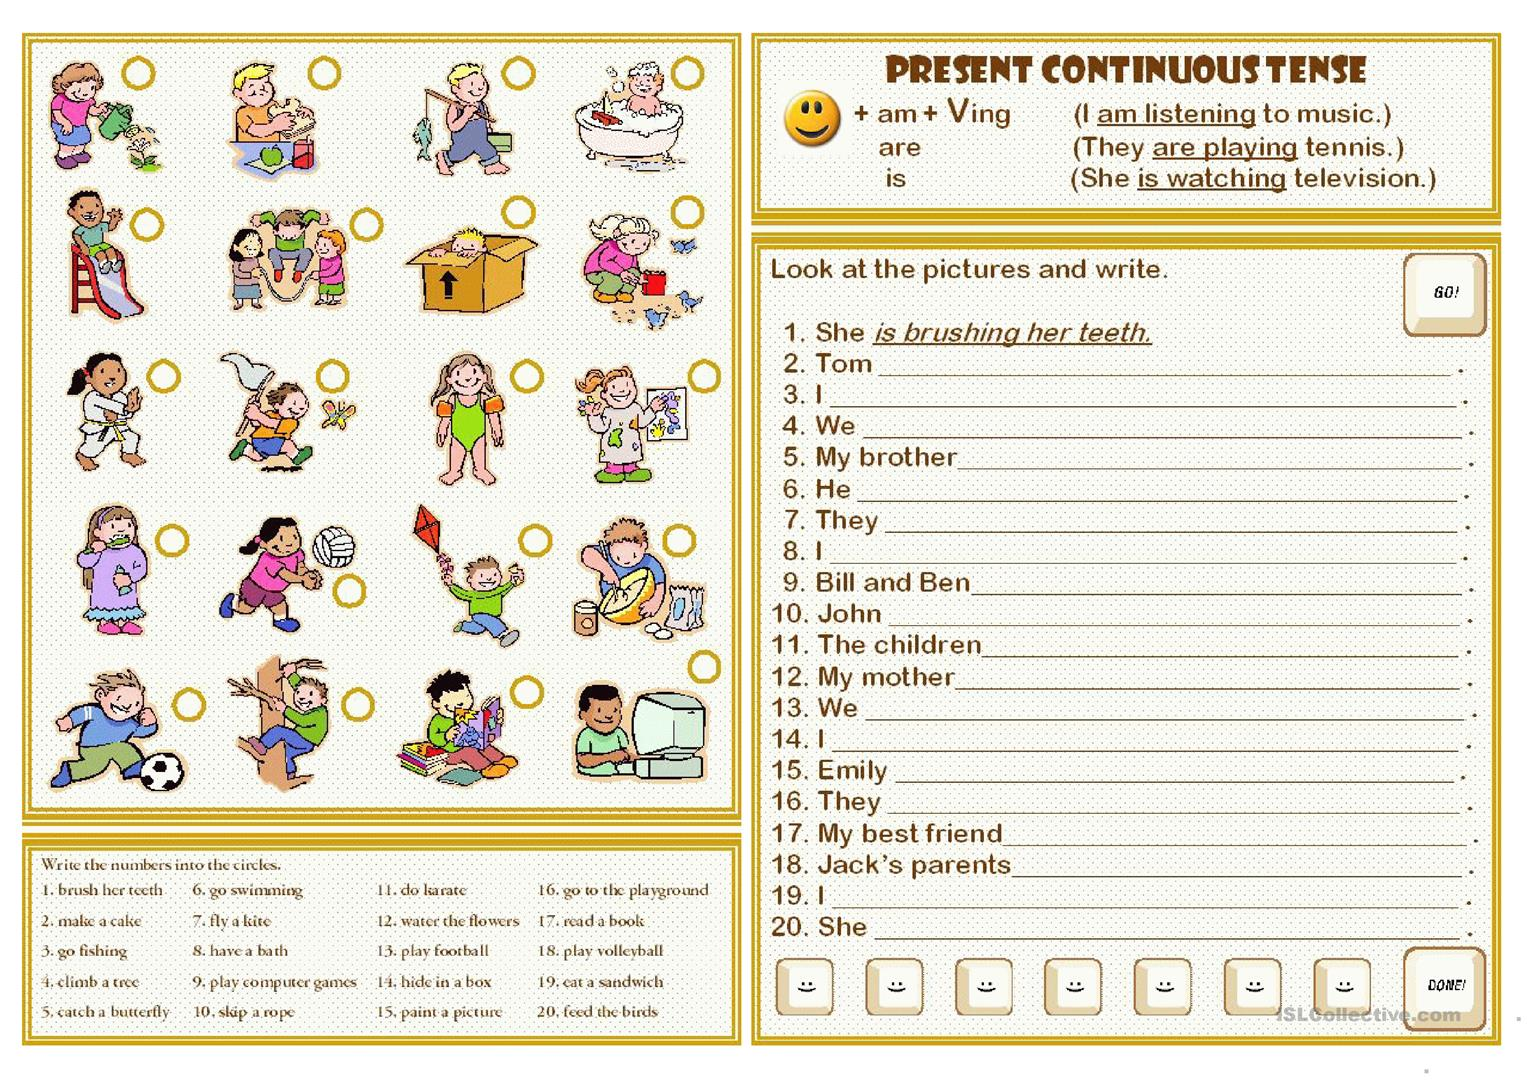 Present Continuous Tense Worksheets For Grade 3